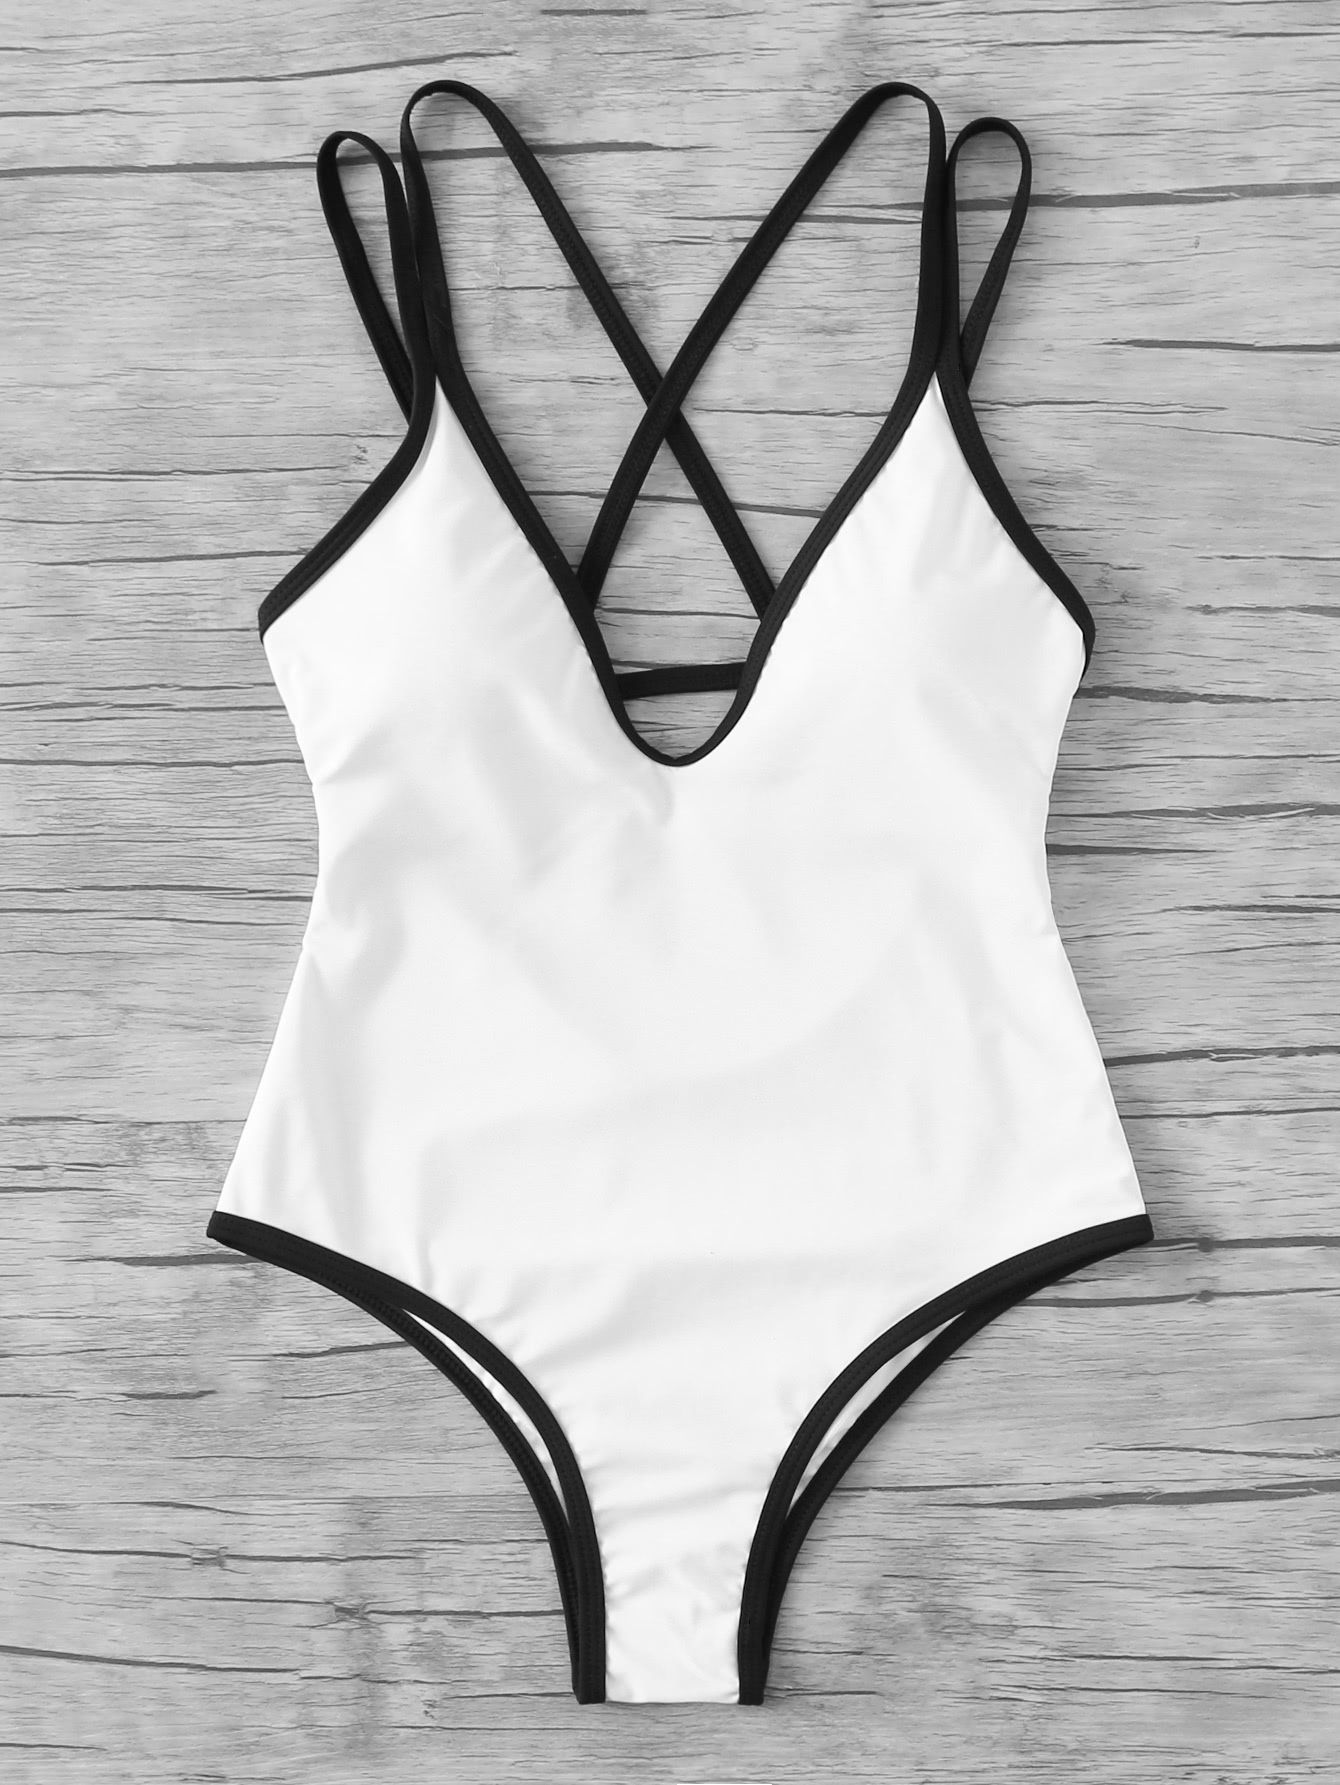 273a0785c2 Contrast Trim Cut Out Back Swimsuit -SheIn(Sheinside) | SWIMSUIT ...